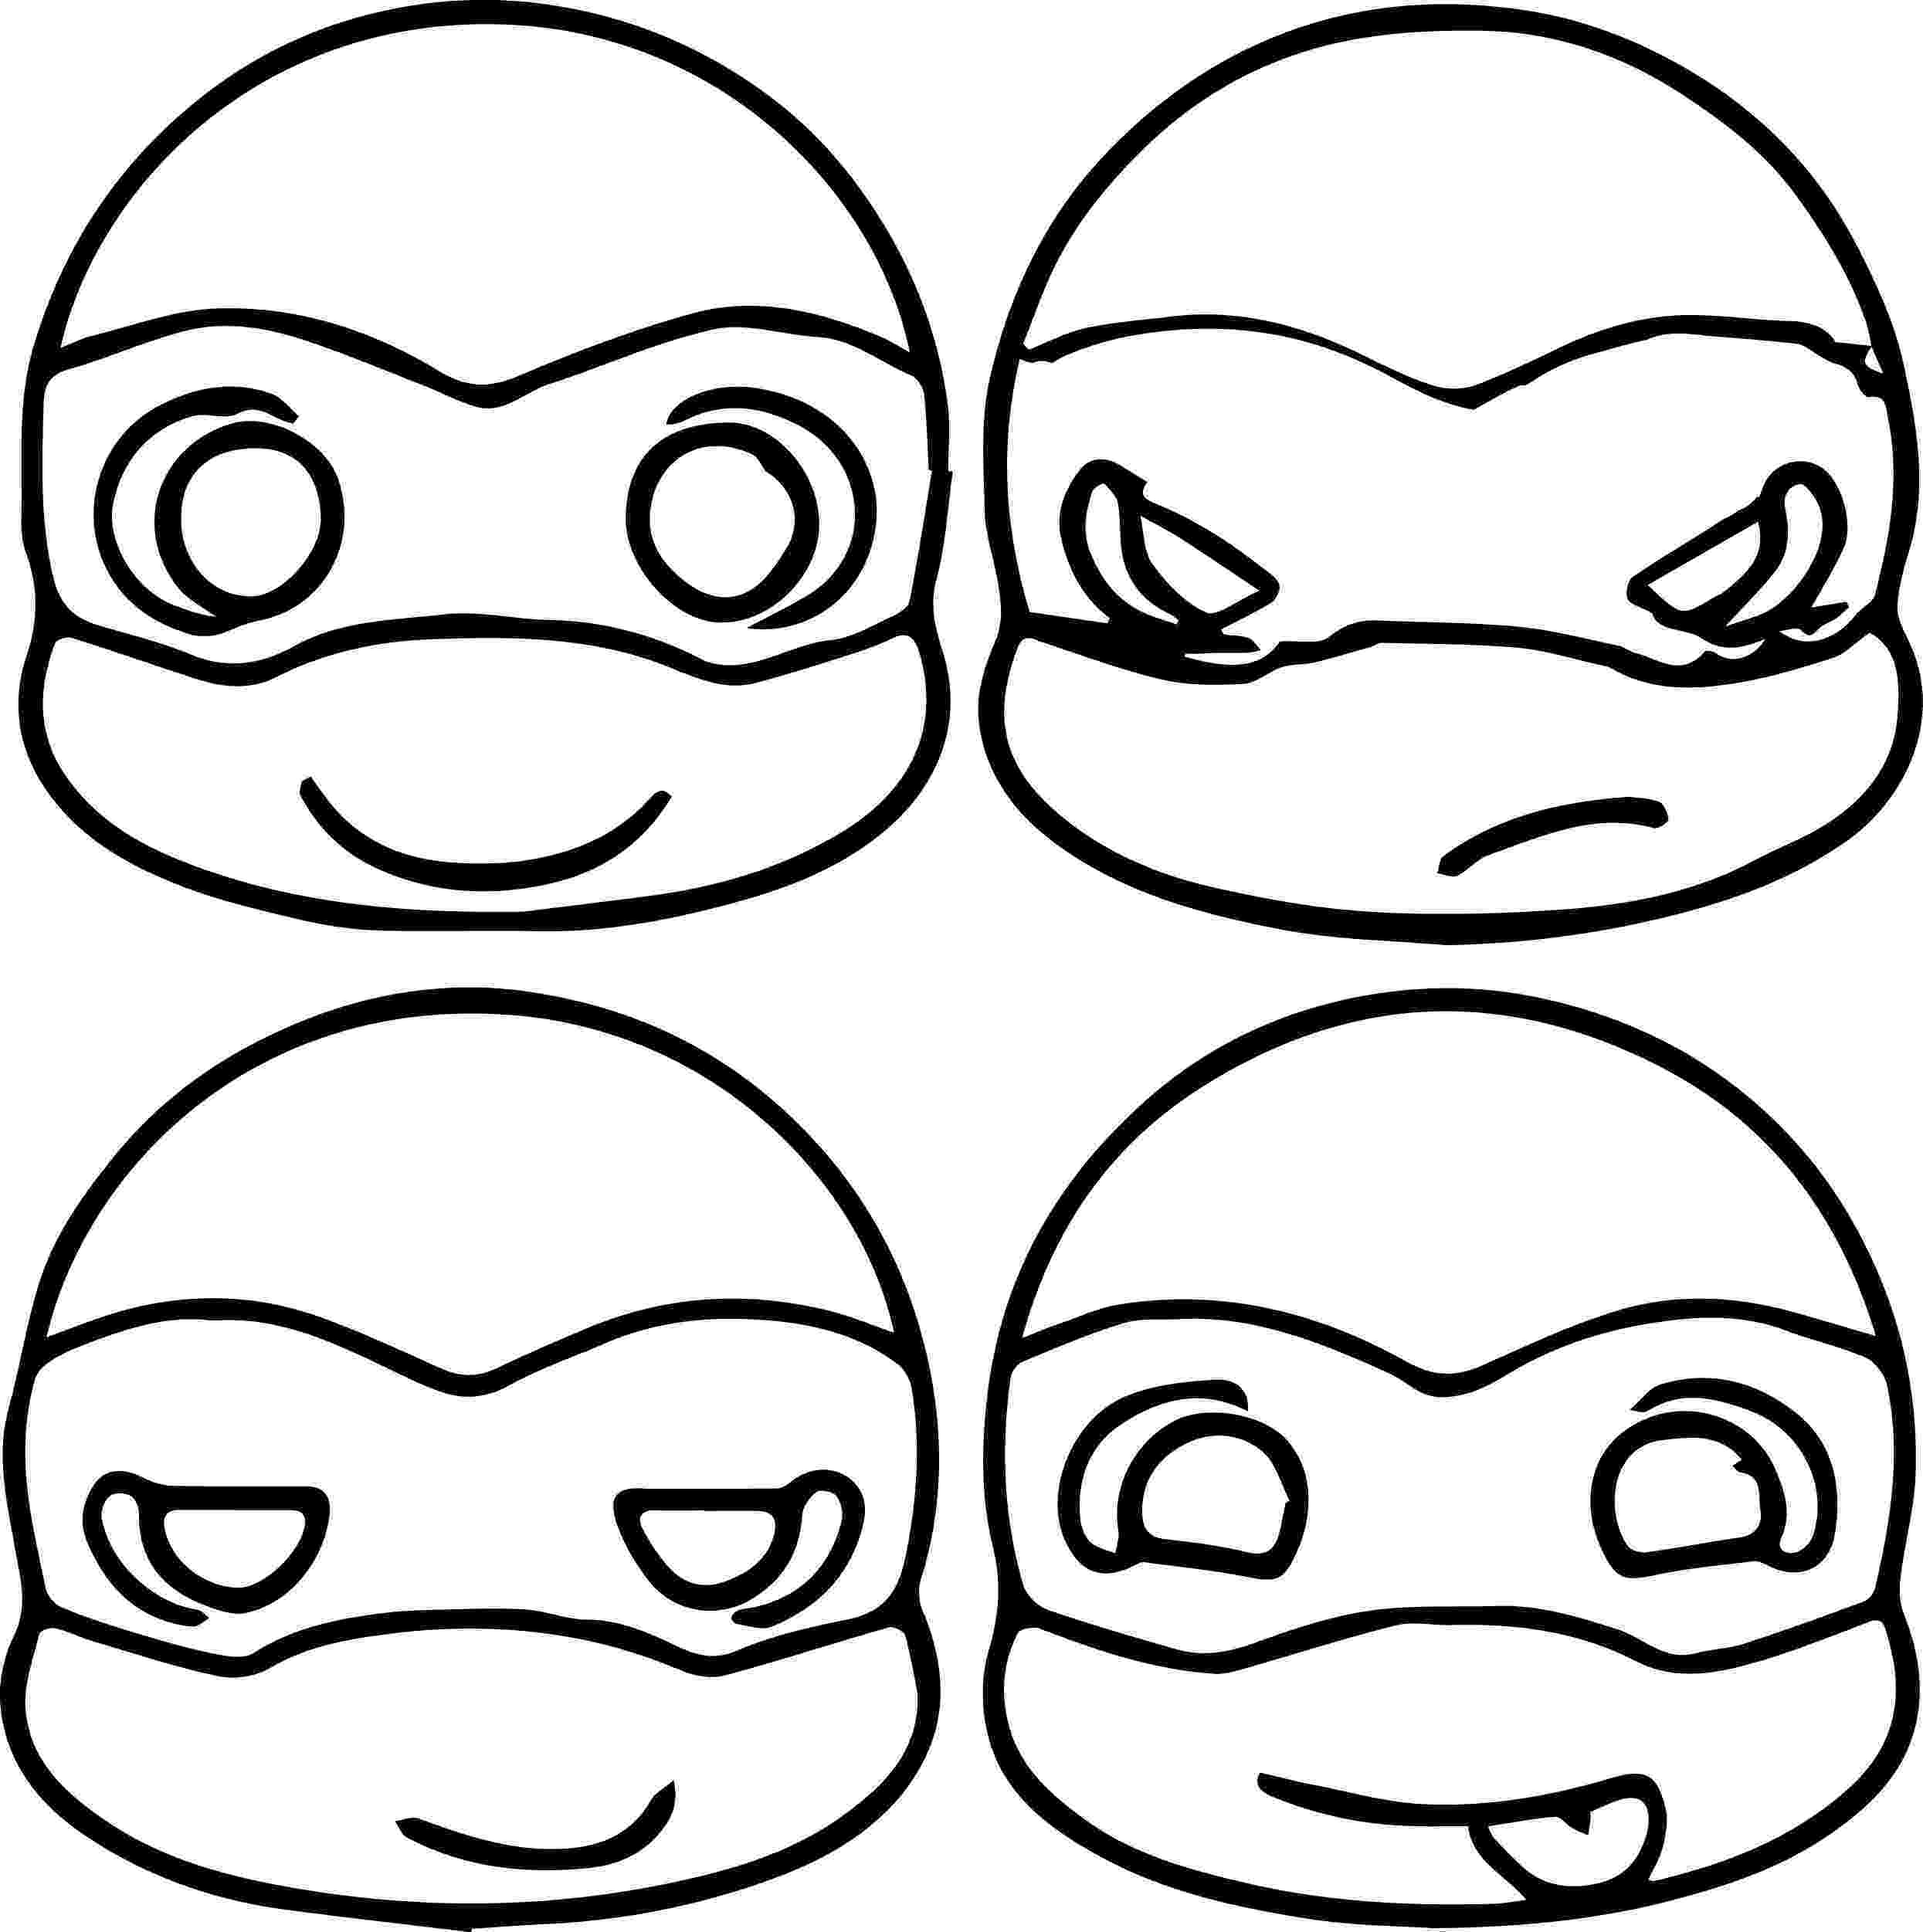 ninja turtles color craftoholic teenage mutant ninja turtles coloring pages ninja color turtles